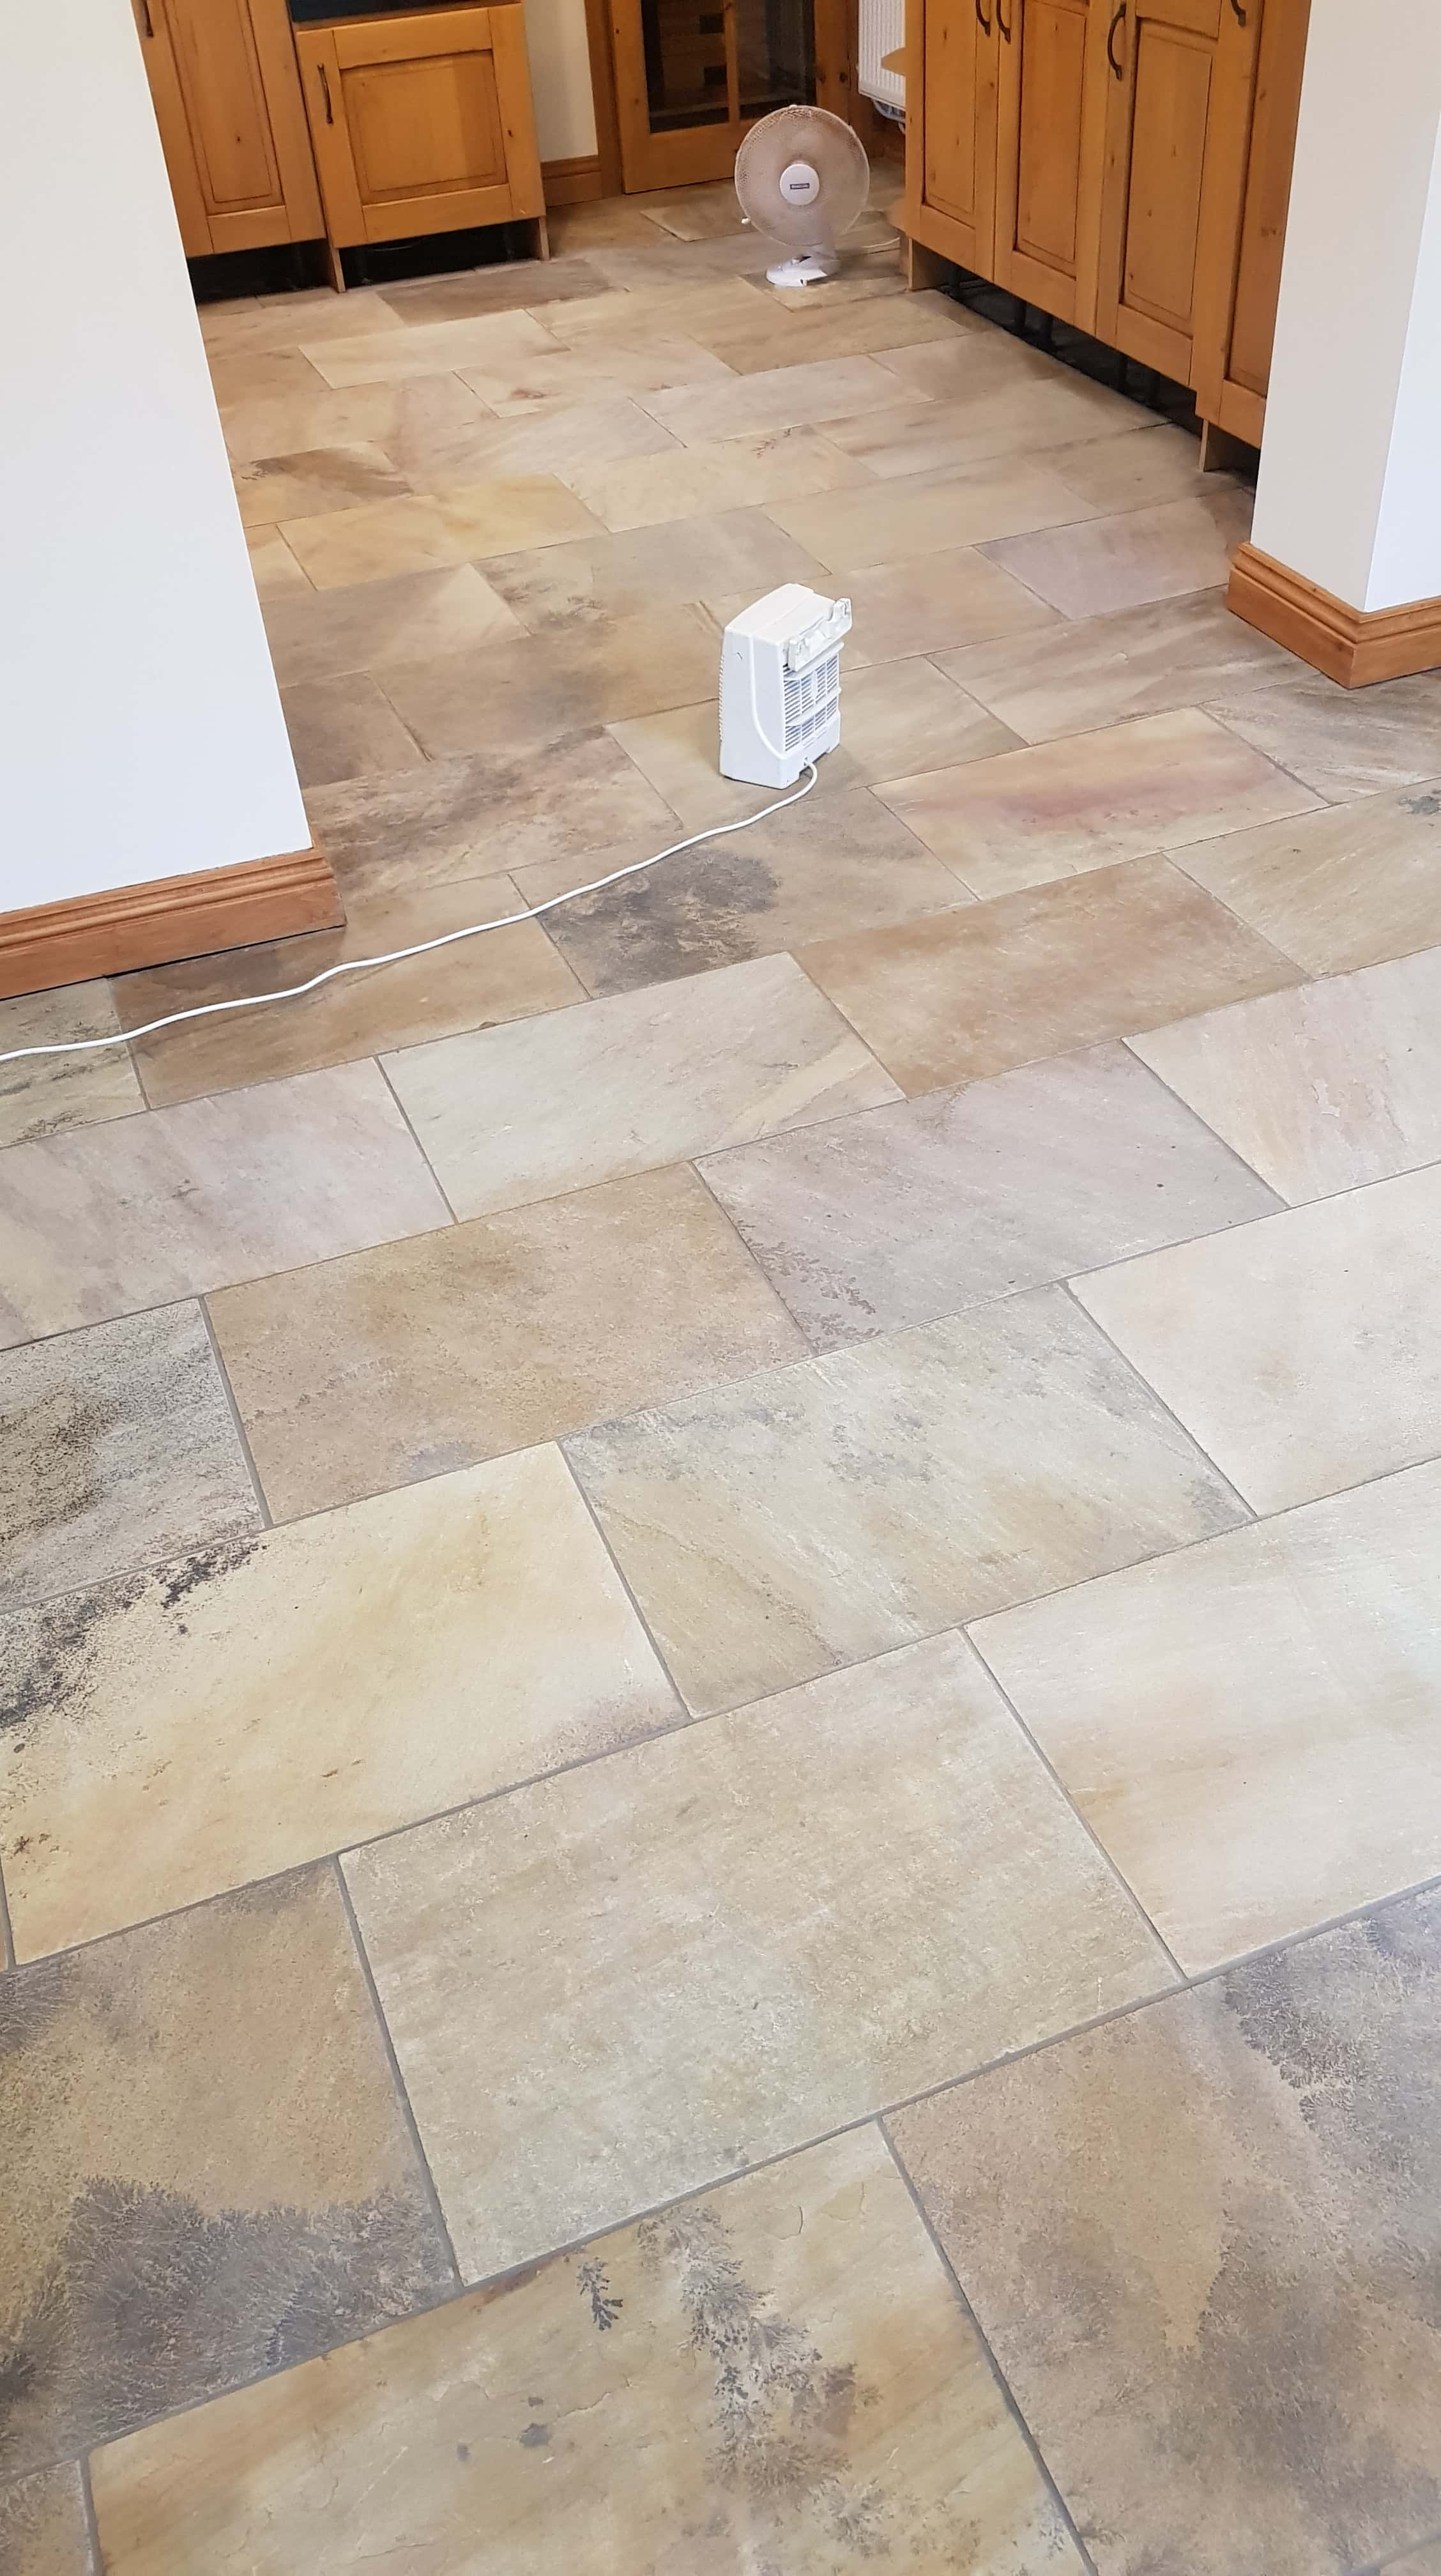 Sandstone Tiled Kitchen Floor After Cleaning in Mapplewell